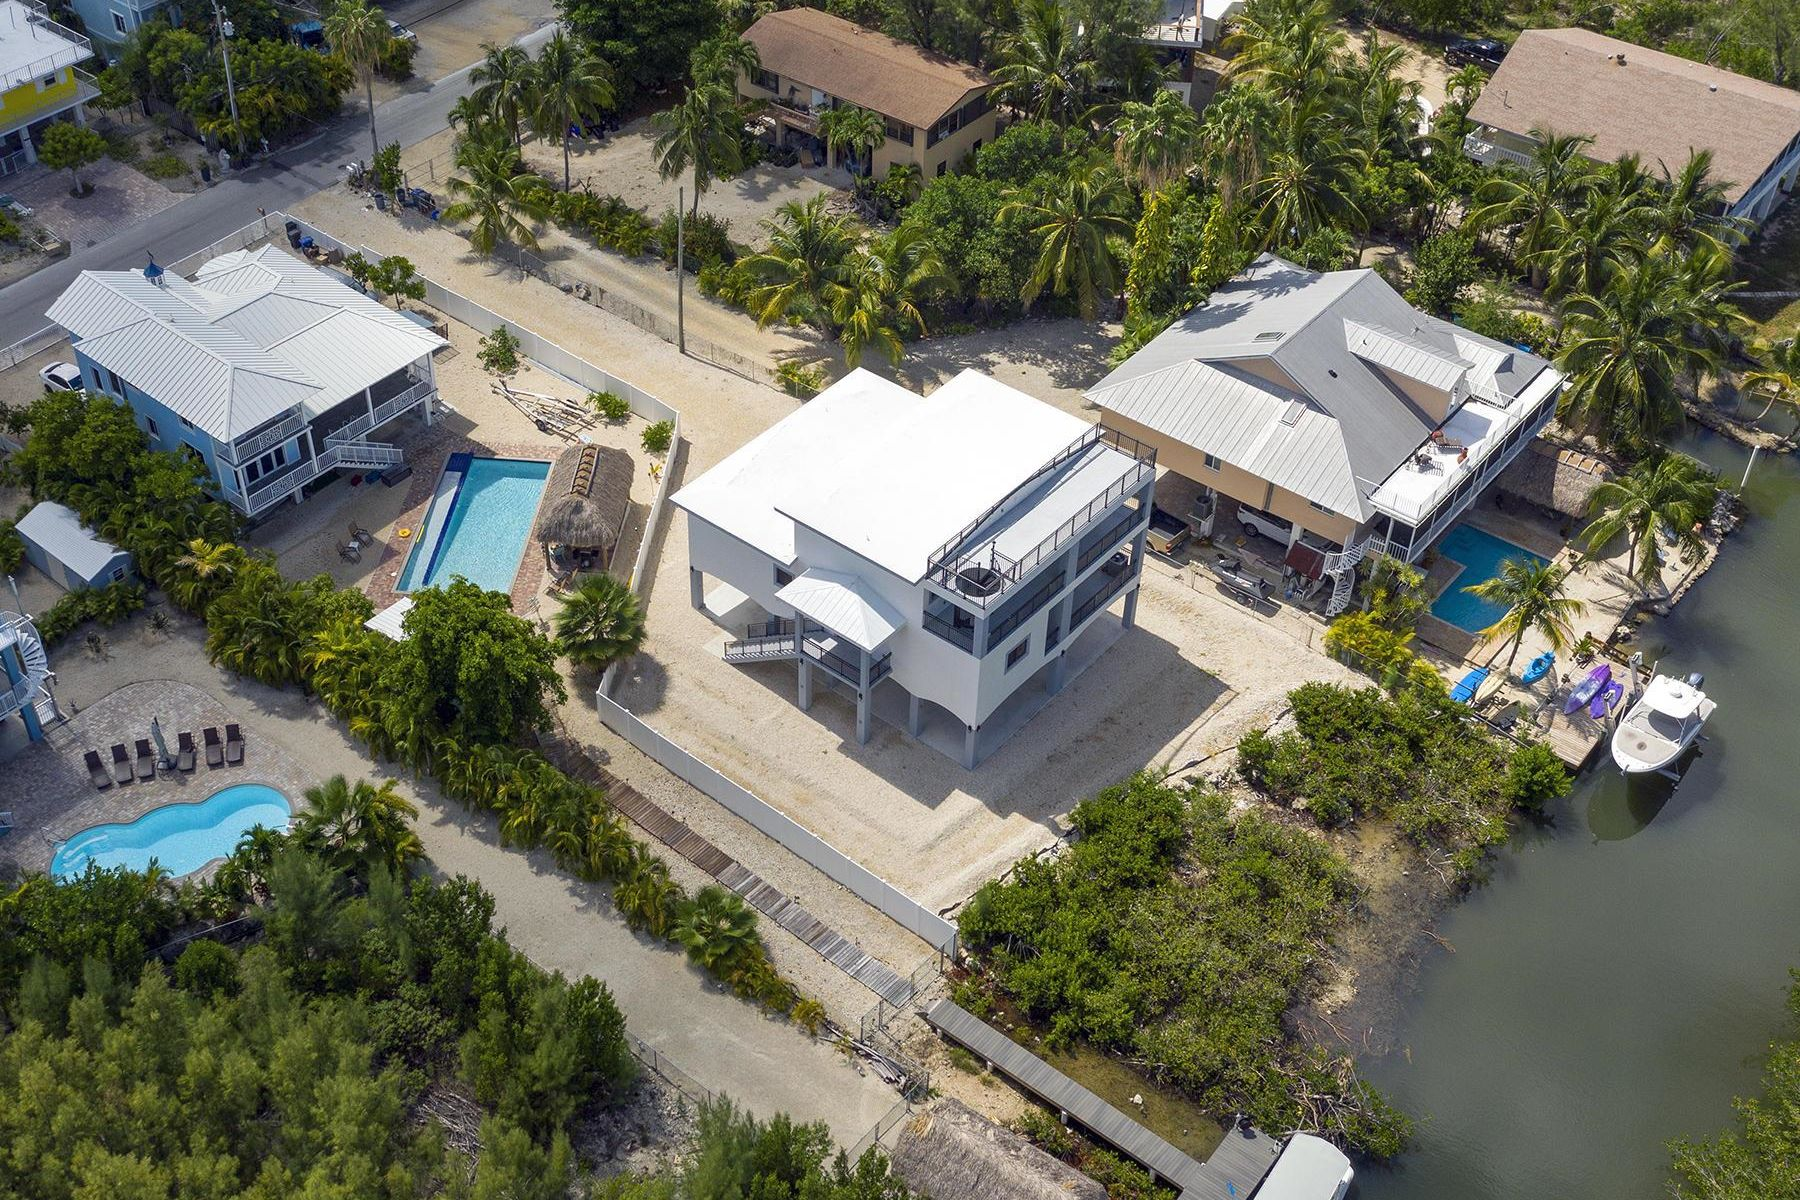 Property for Sale at 41 Jean La Fitte Drive, Key Largo, FL Key Largo, Florida 33037 United States